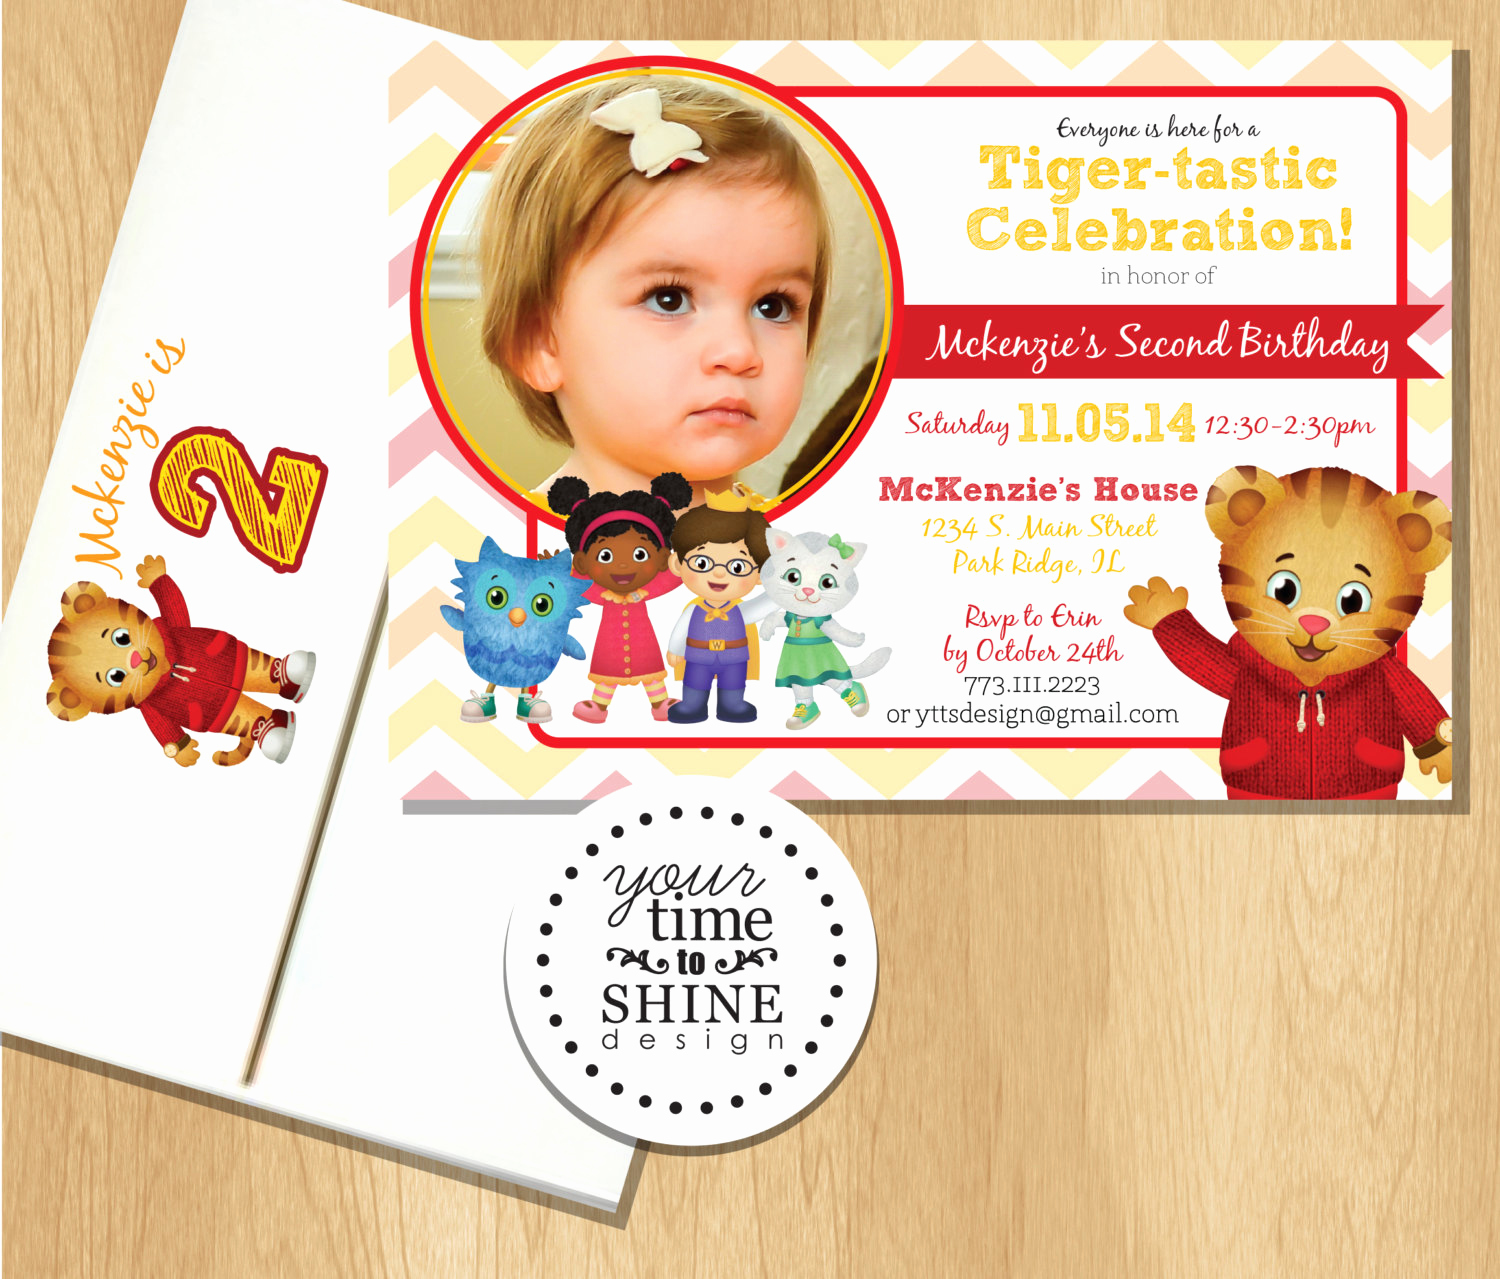 Daniel Tiger Birthday Invitation Inspirational Daniel Tiger Birthday Invitations with Custom Printed